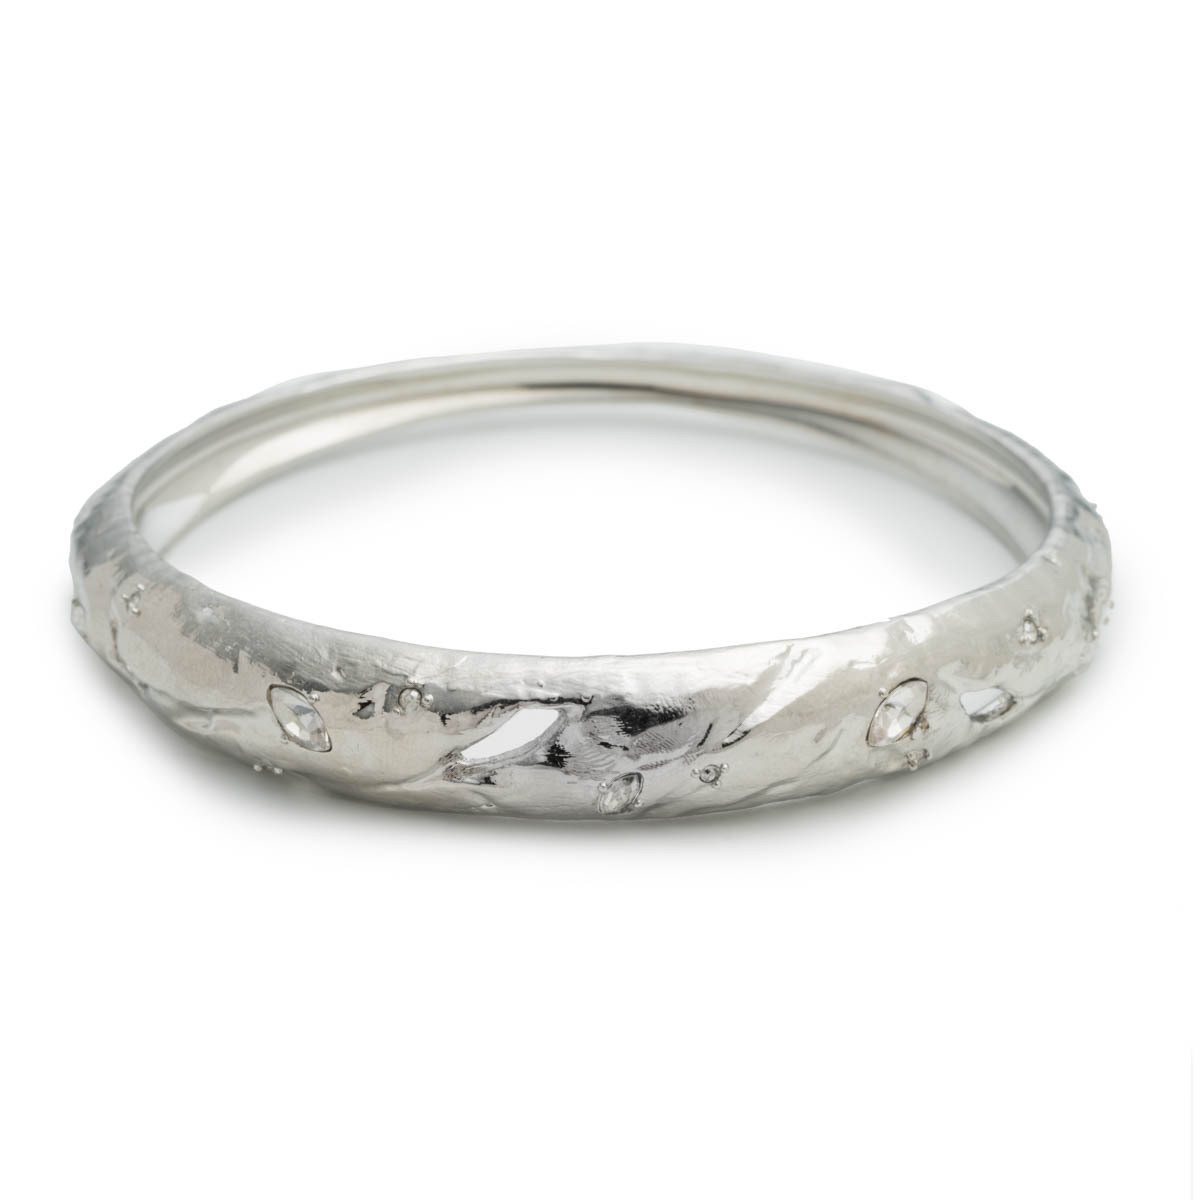 Skinny Tapered Rocky Metal Bangle Bracelet